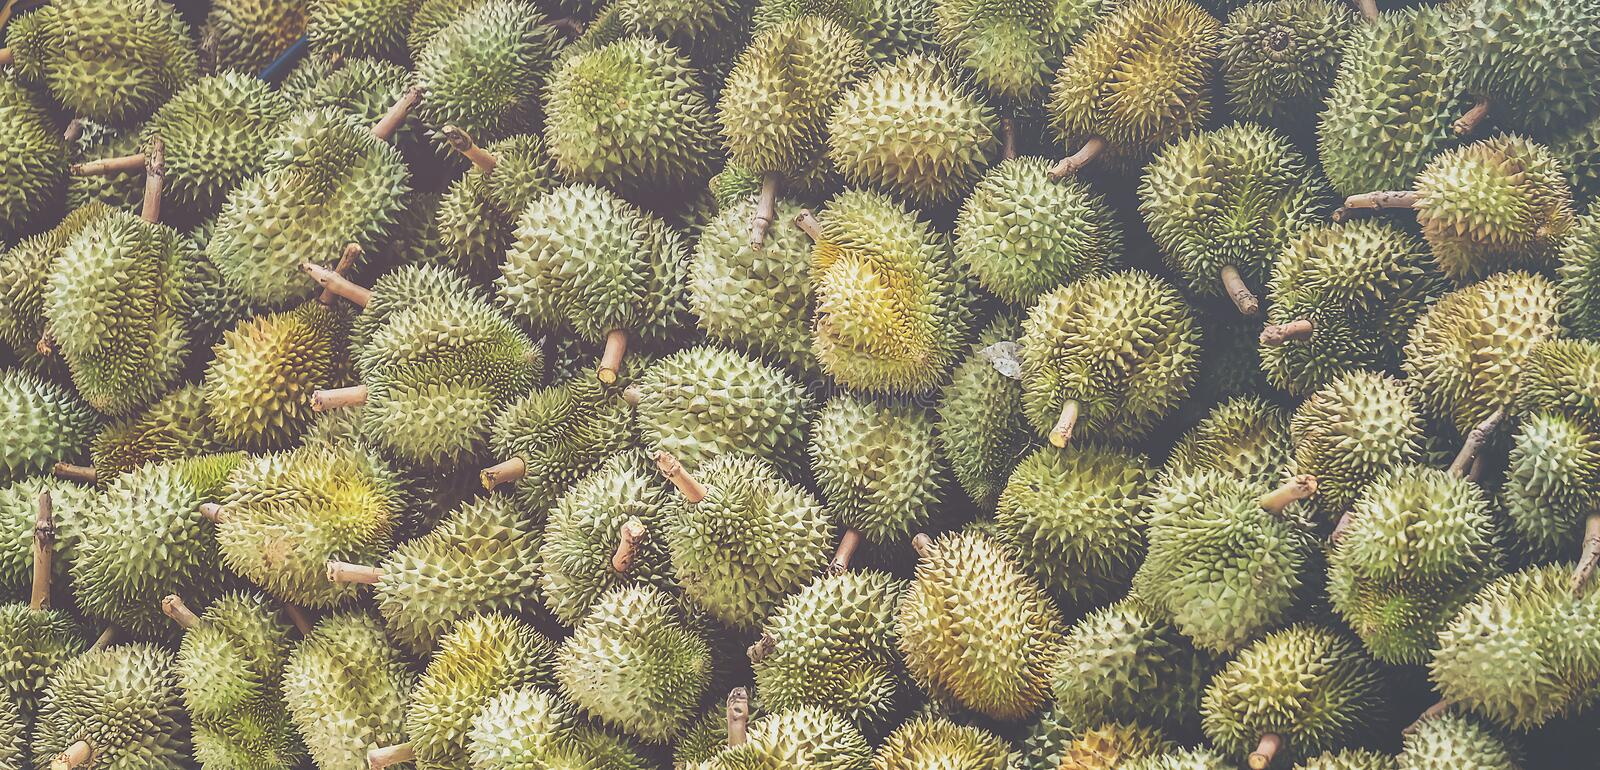 Many durians are lined like mountains. Many durians are lined like mountains stock image